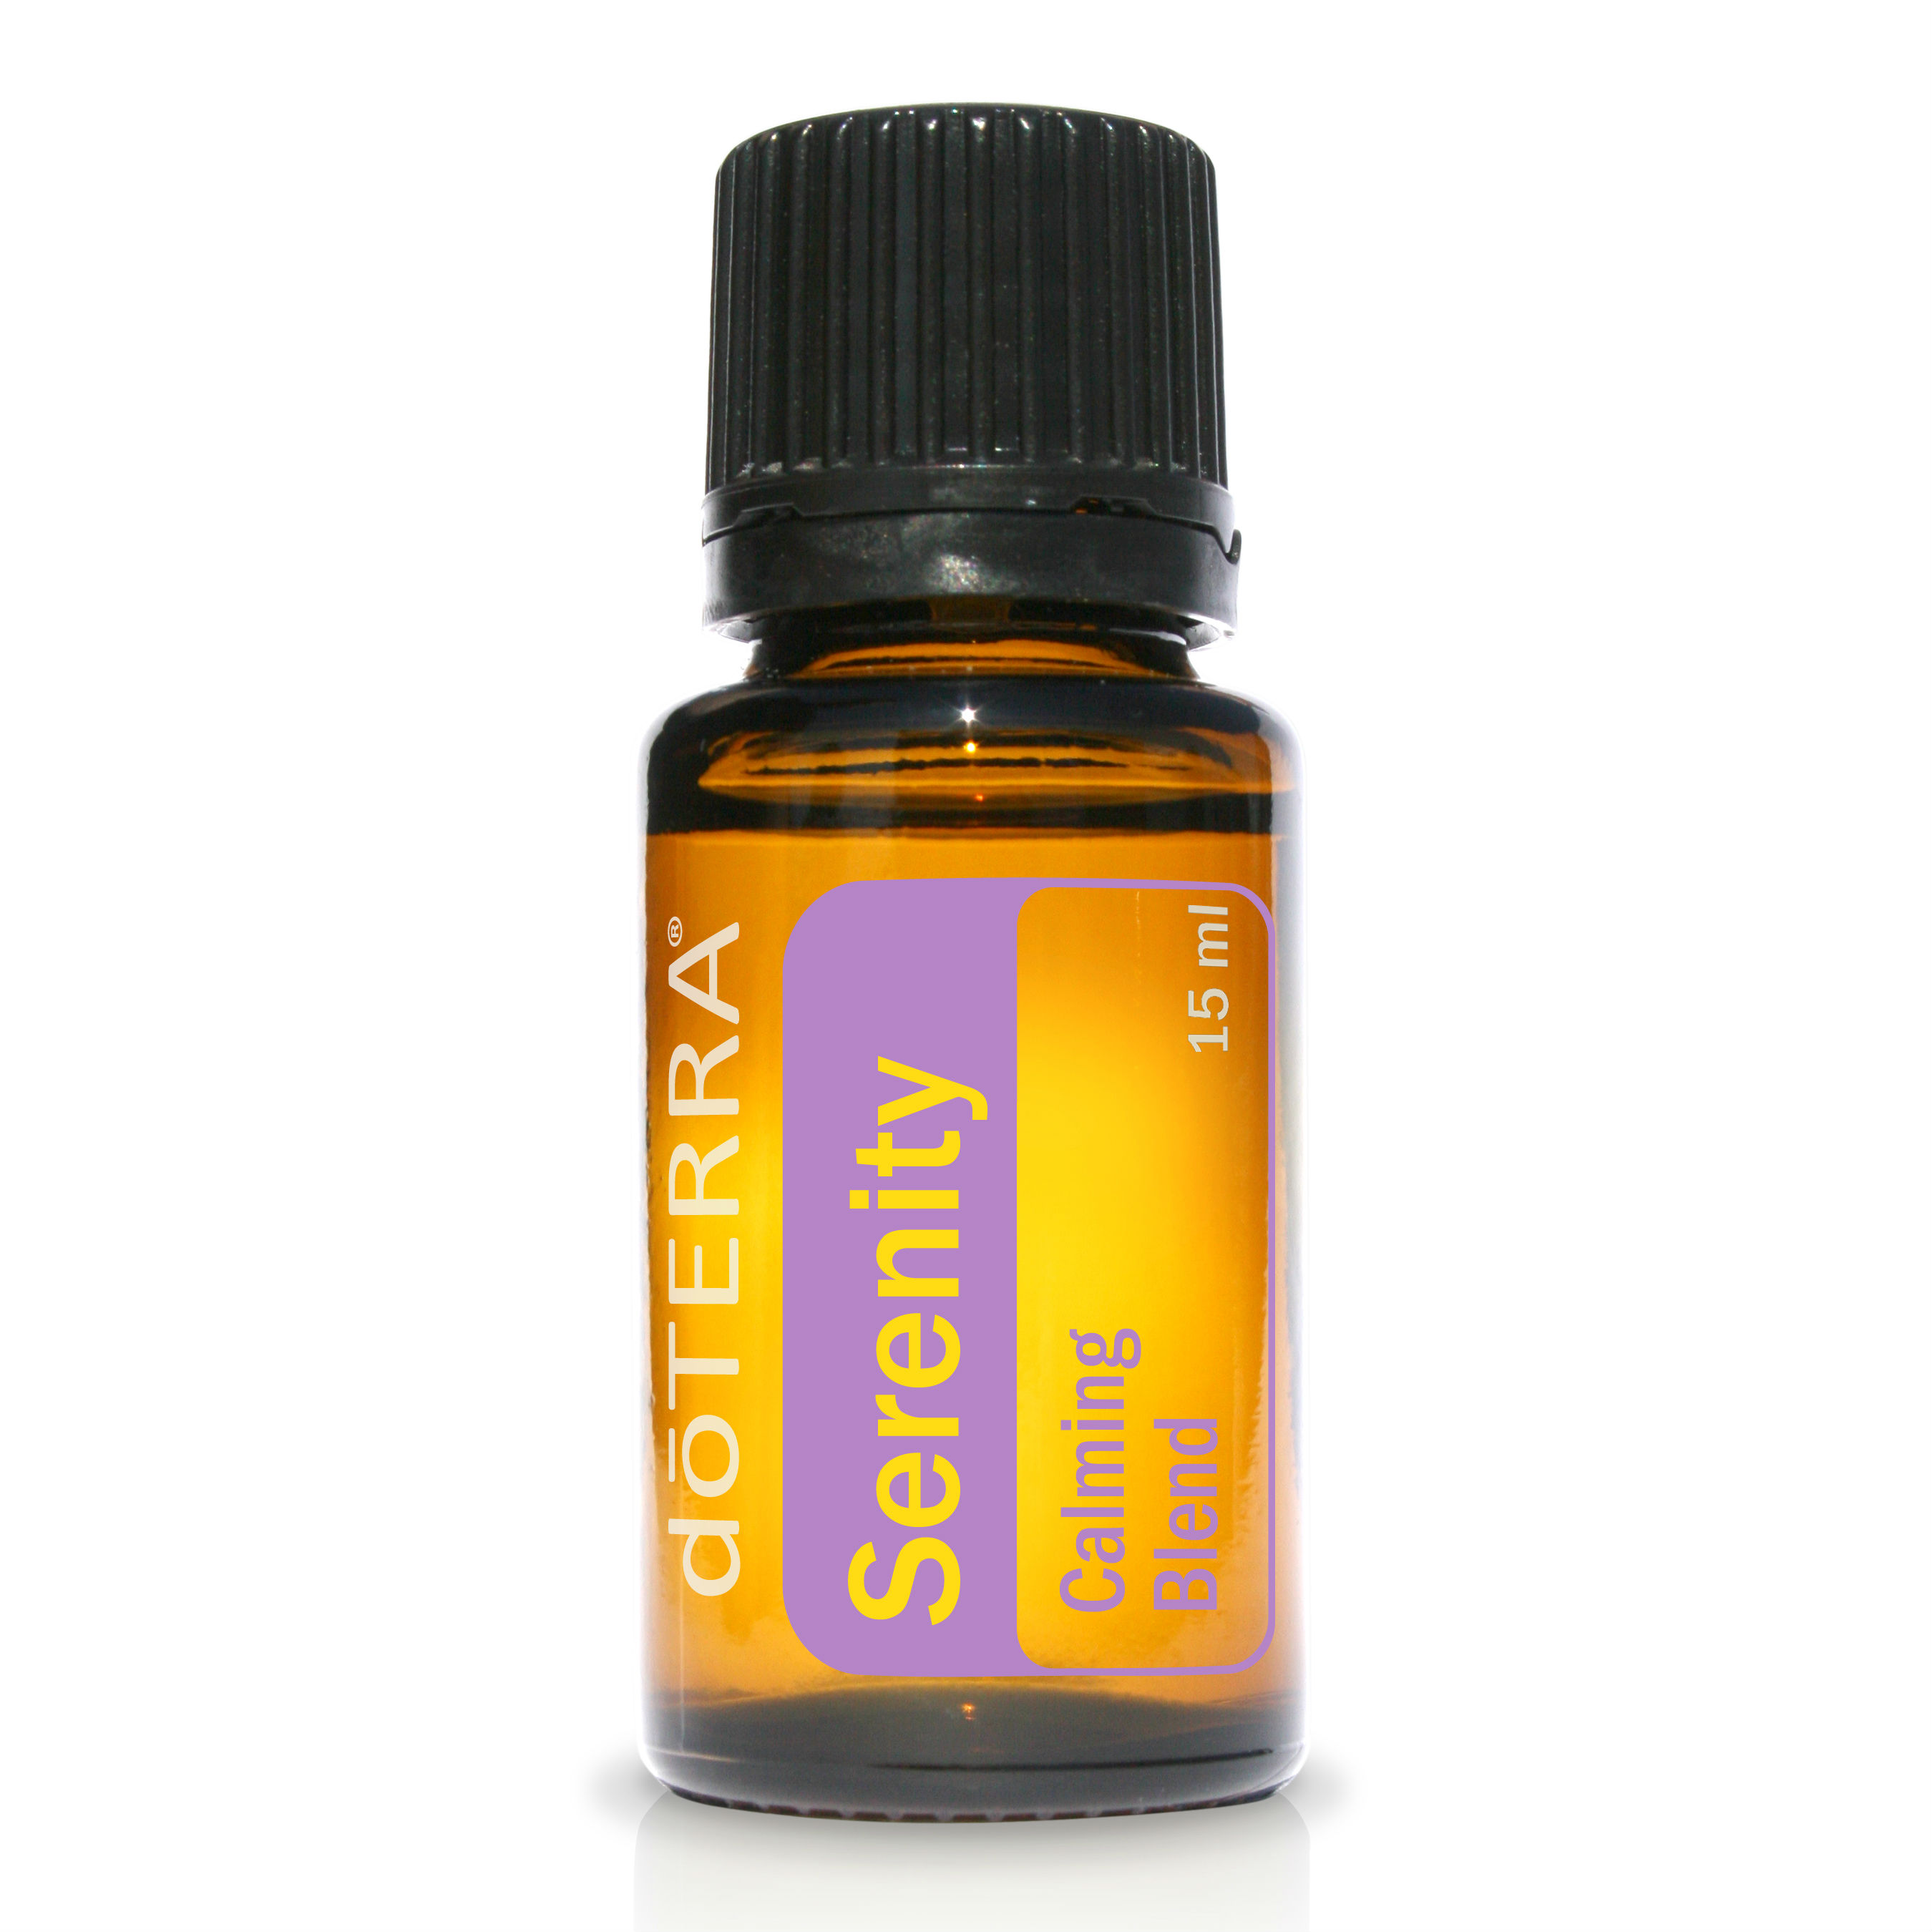 doTERRA Serenity Essential Oil Calming Blend